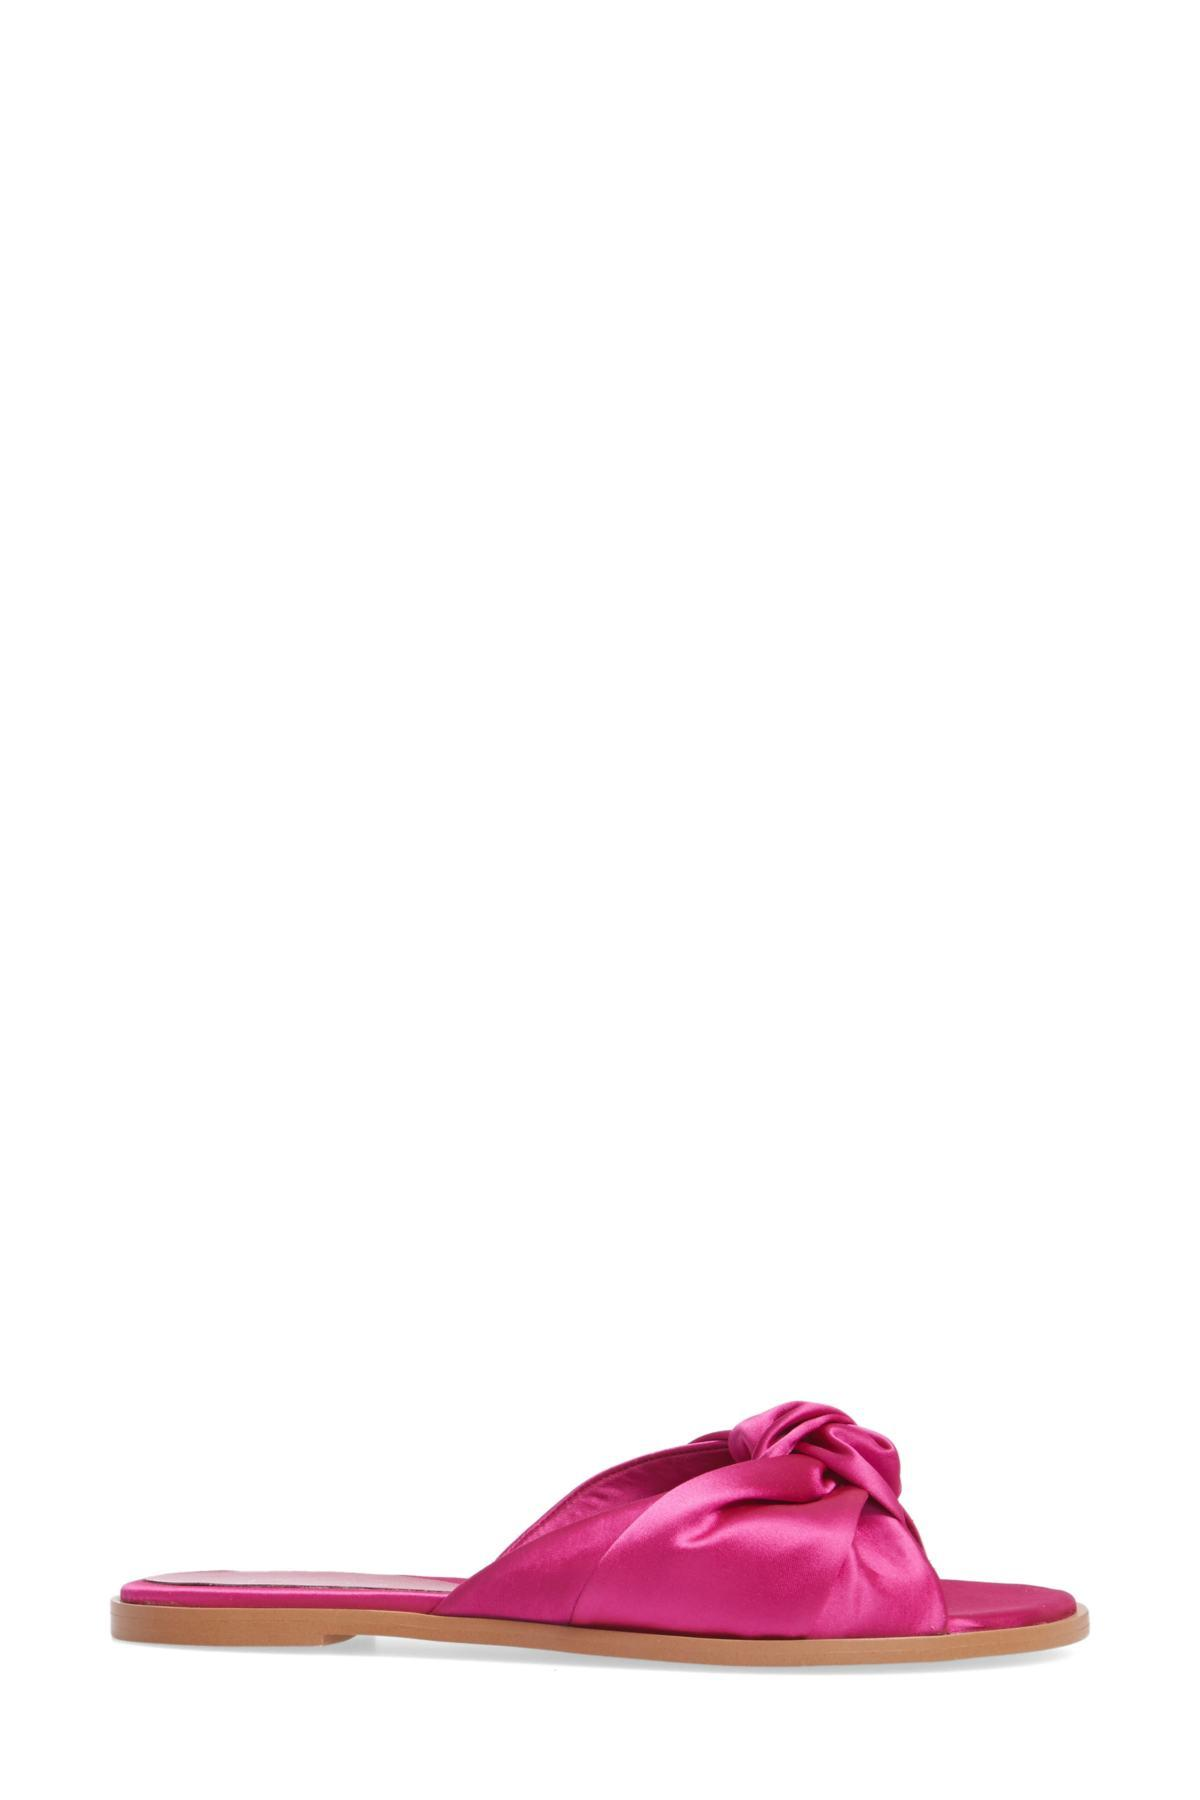 91c52dcb831 Lyst - Leith Nevie Knotted Slide Sandal in Pink